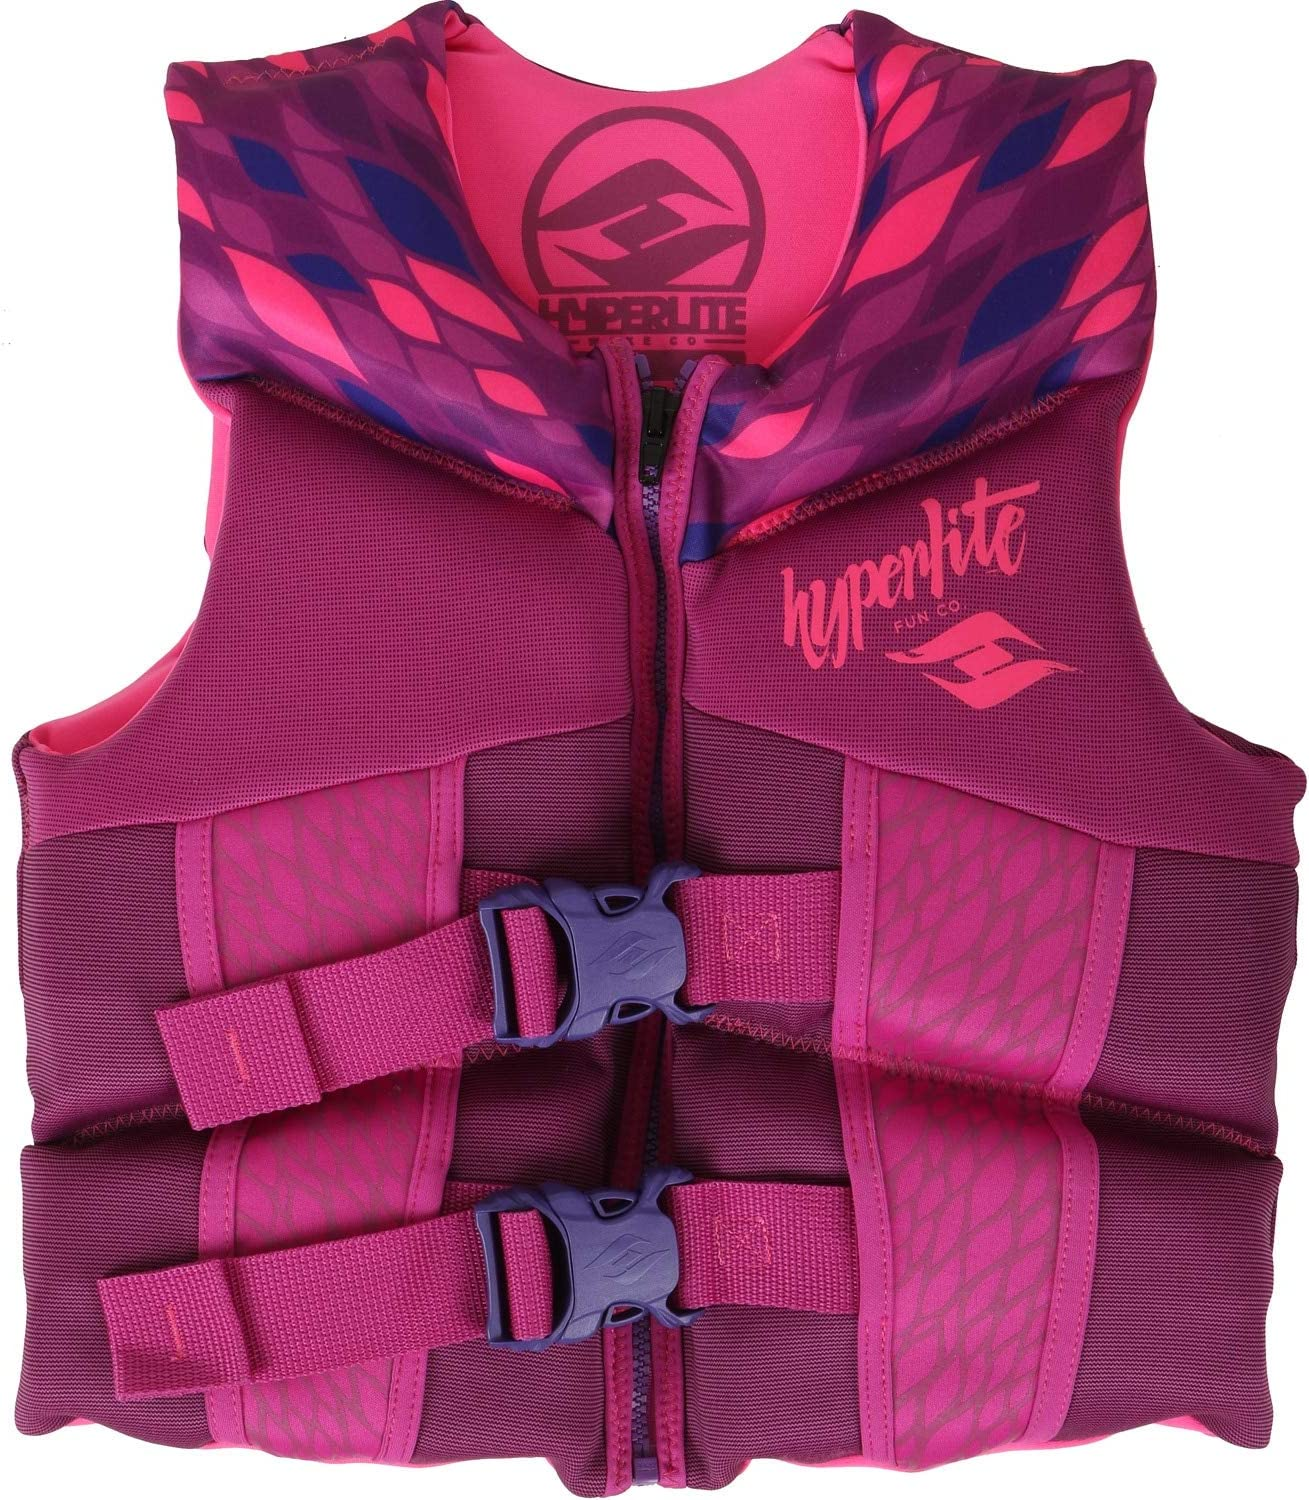 Hyperlite Youth Wakeboard Vest Girl's Sz Youth